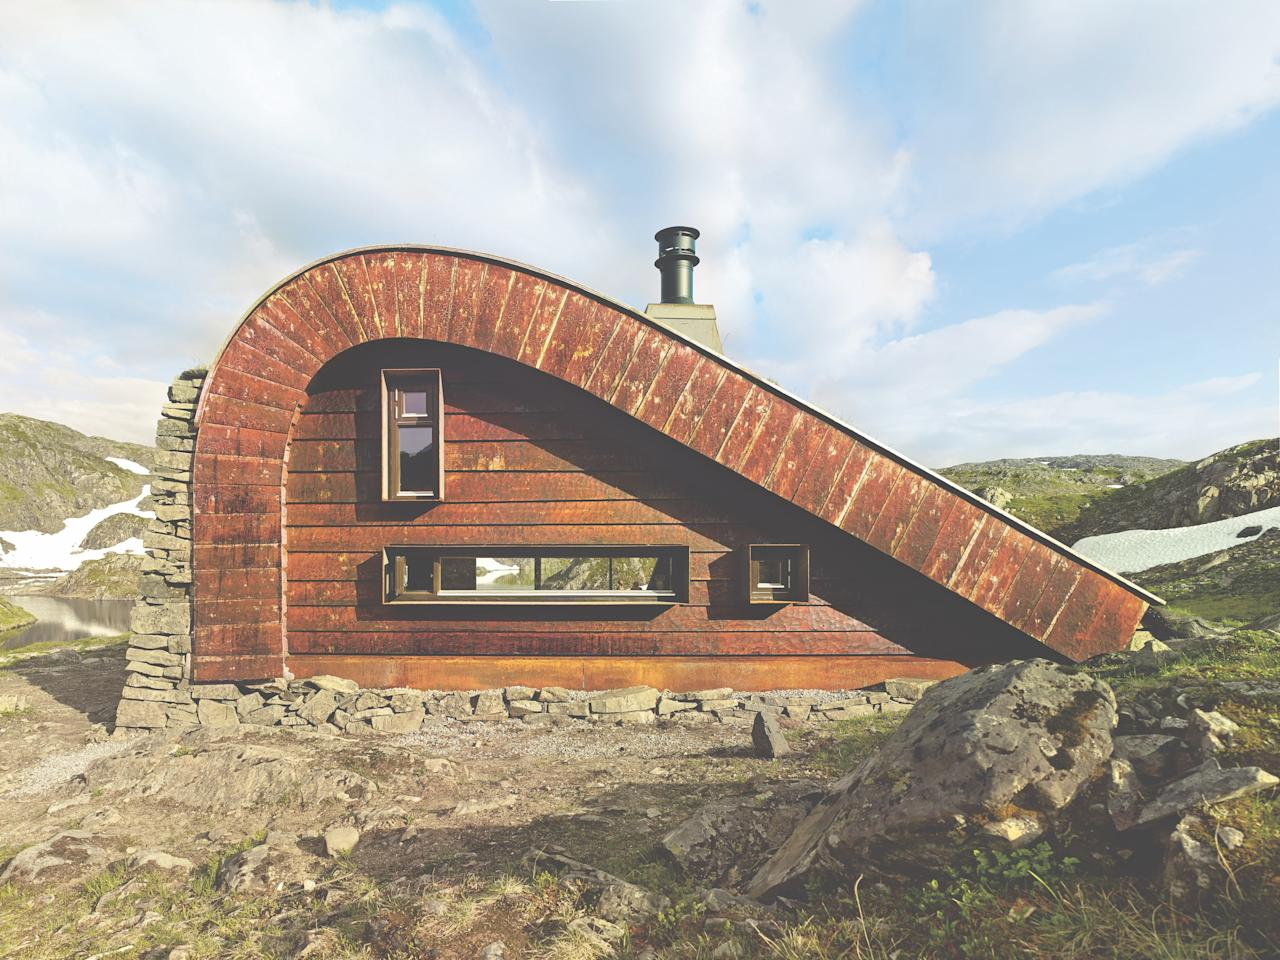 Snøhetta helped a family realize their dream of building a cabin on a Norwegian mountain plateau where they take their sheep to graze each summer. <strong>Bjellandsbu Cabin</strong> was designed to blend in with the landscape but also sleep up to 21 people. The building's shape was chosen to mimic the terrain, and the structure is covered native grasses and stone.